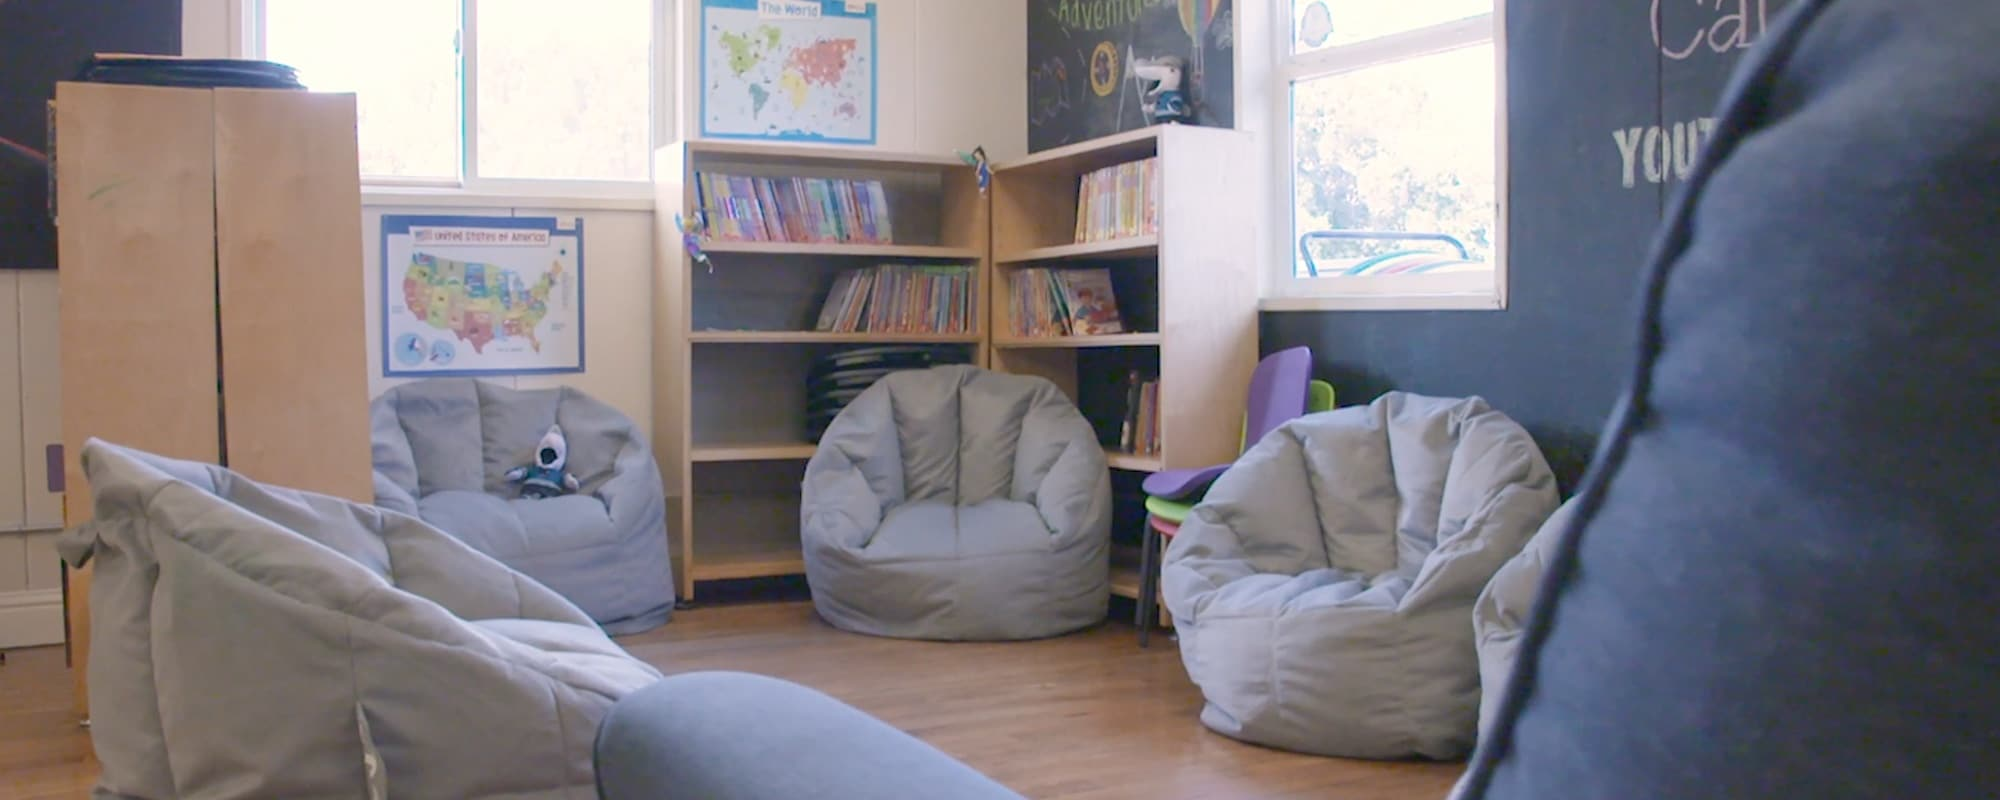 Bright classroom corner outfitted with filled bookshelves, maps, and bean bag chairs.